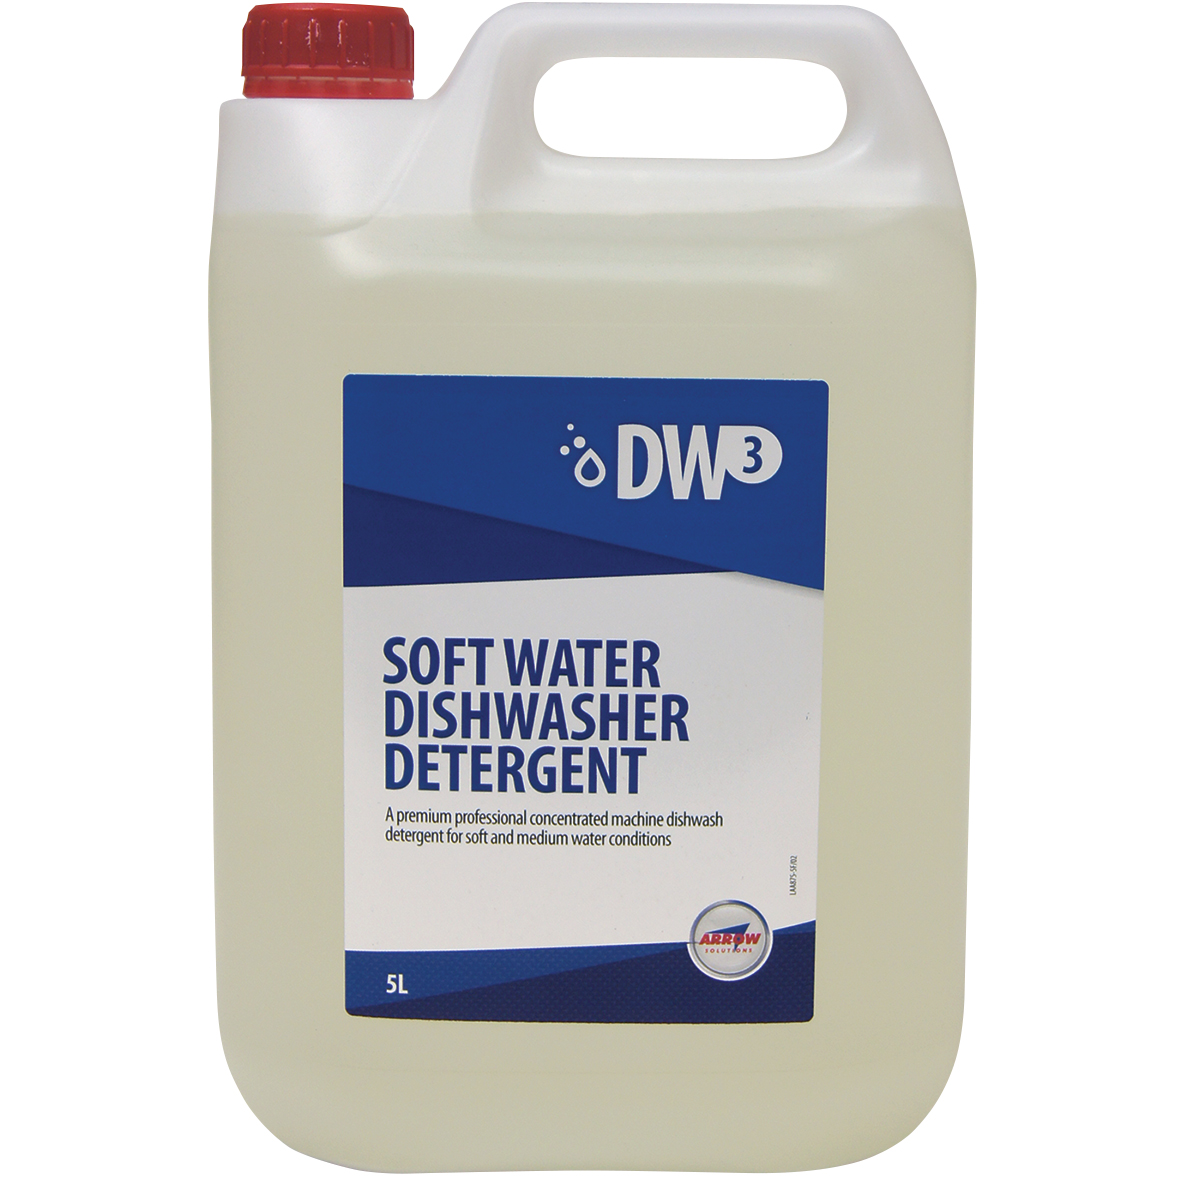 DW3 Soft Water Dishwasher Detergent product image